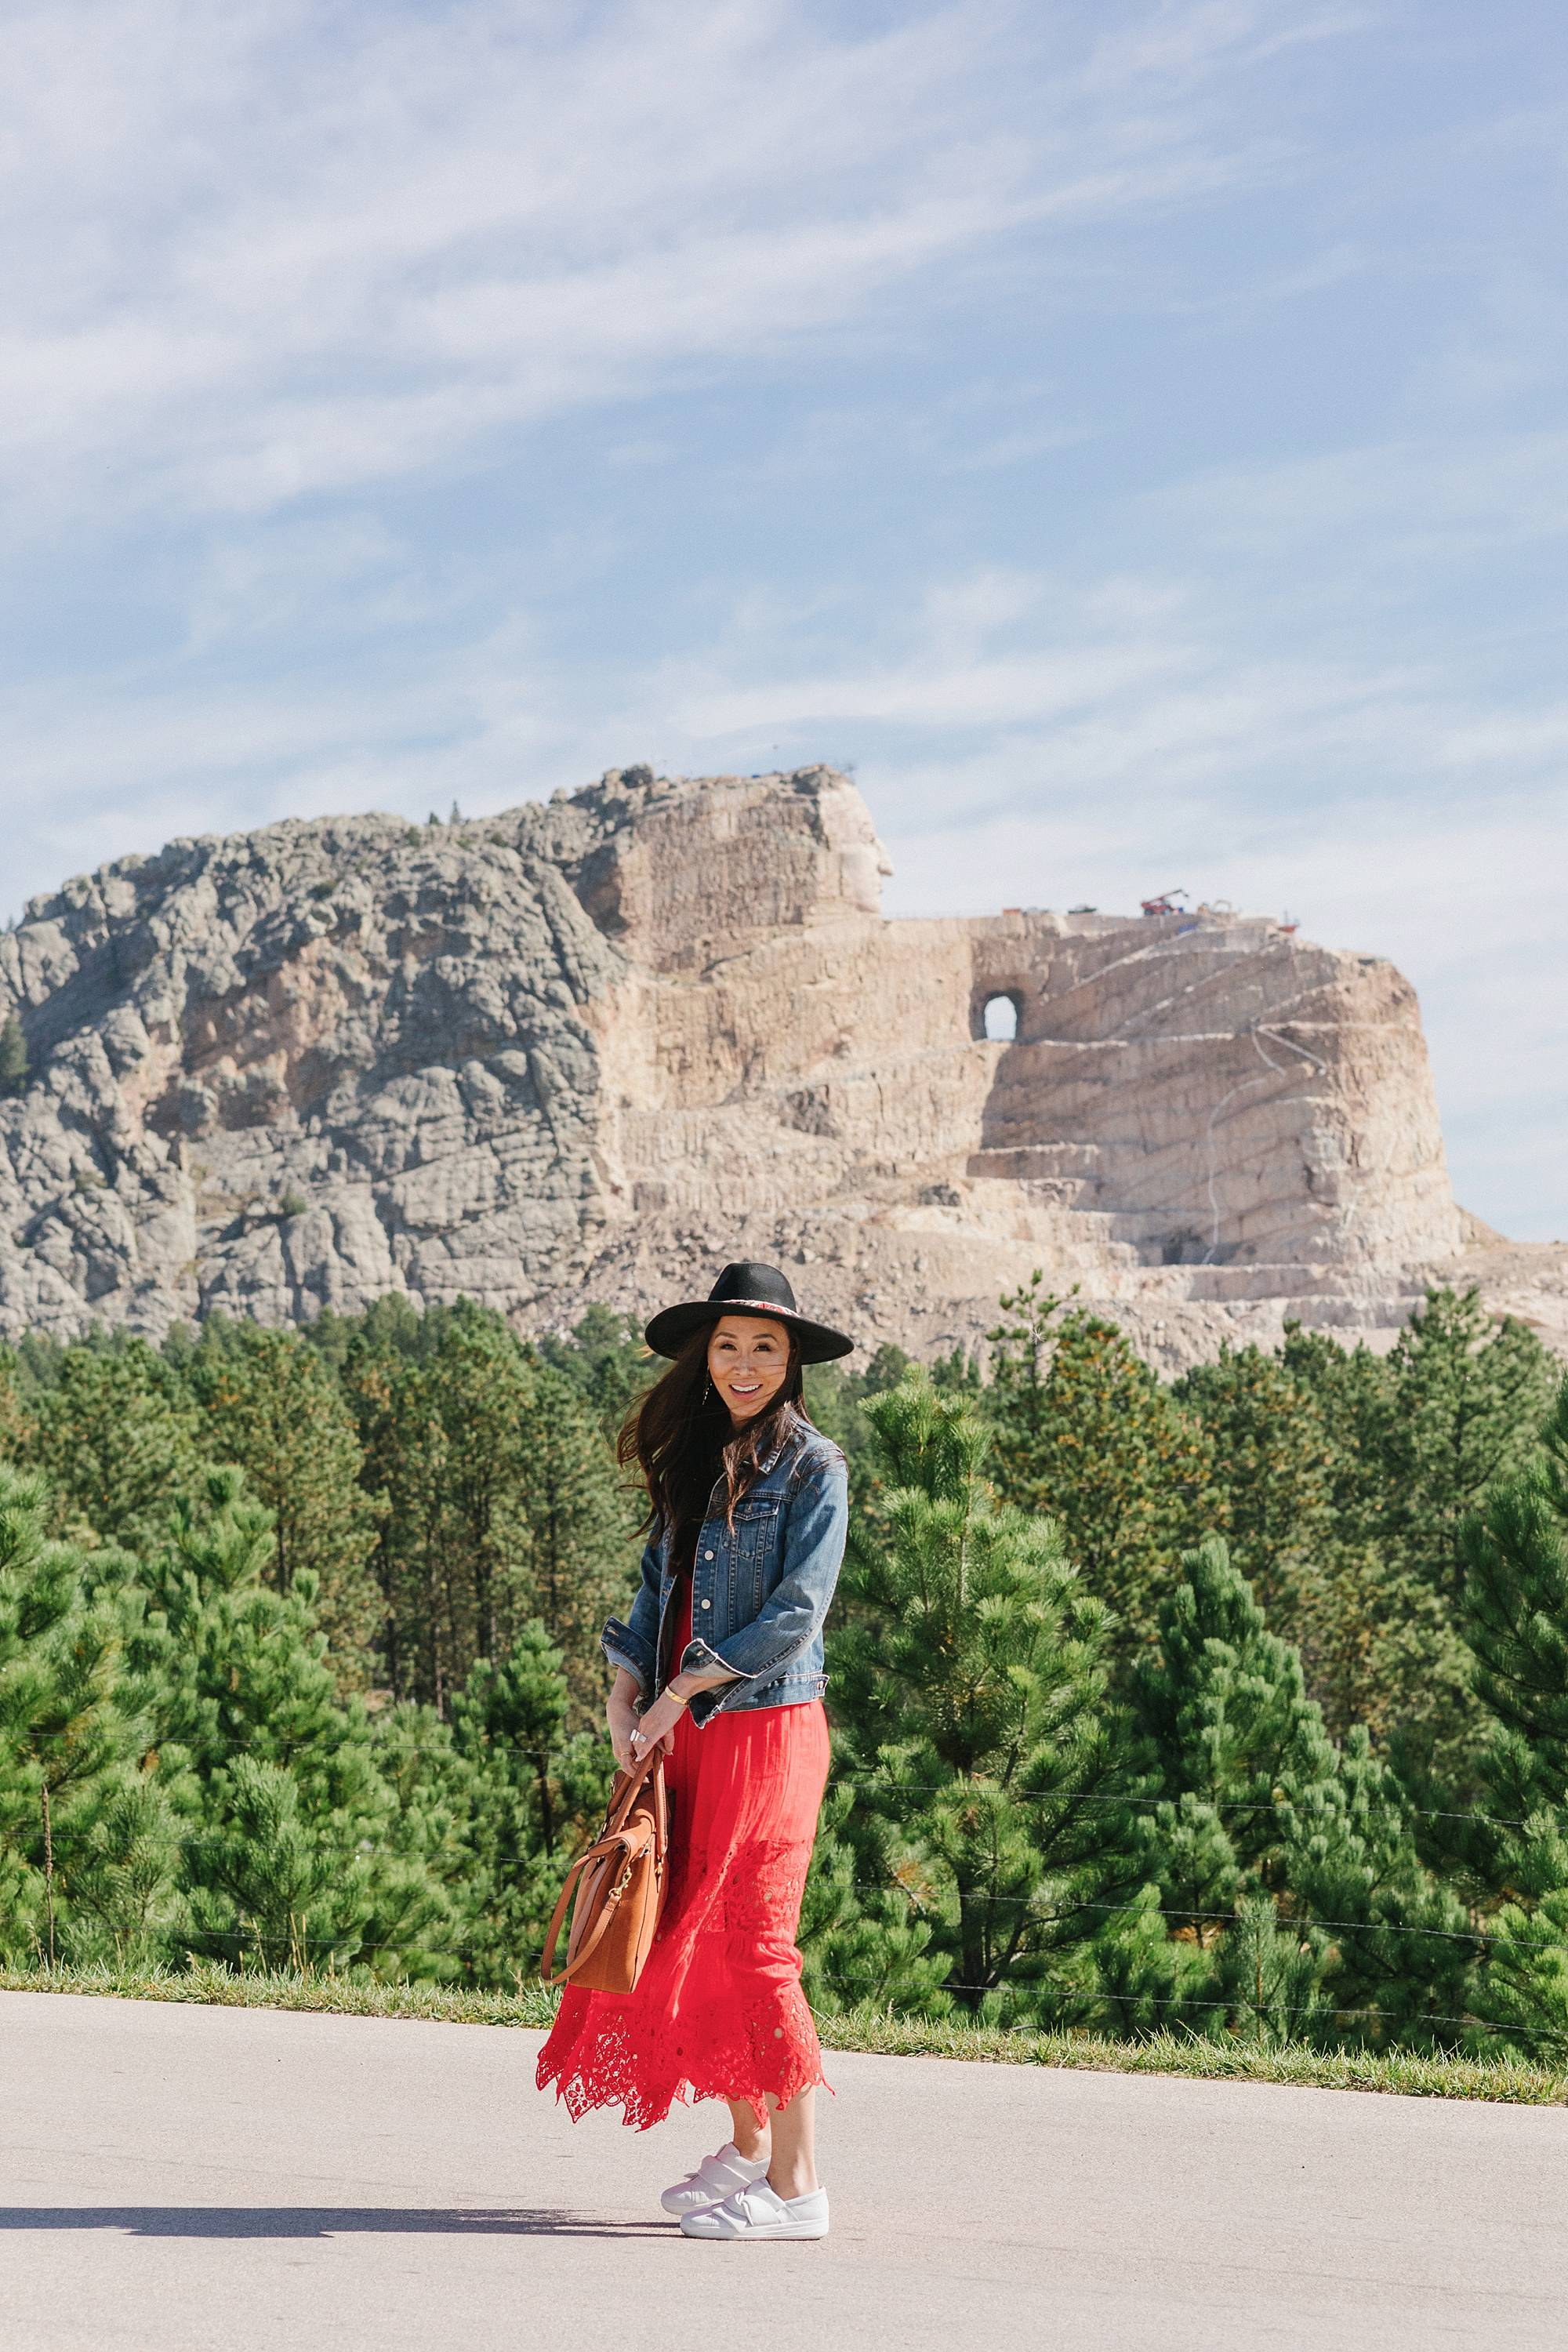 Crazy Horse Memorial in South Dakota - Diana Elizabeth Phoenix lifestyle blogger wearing red free people dress and wool hat and denim jacket posing with wind blowing